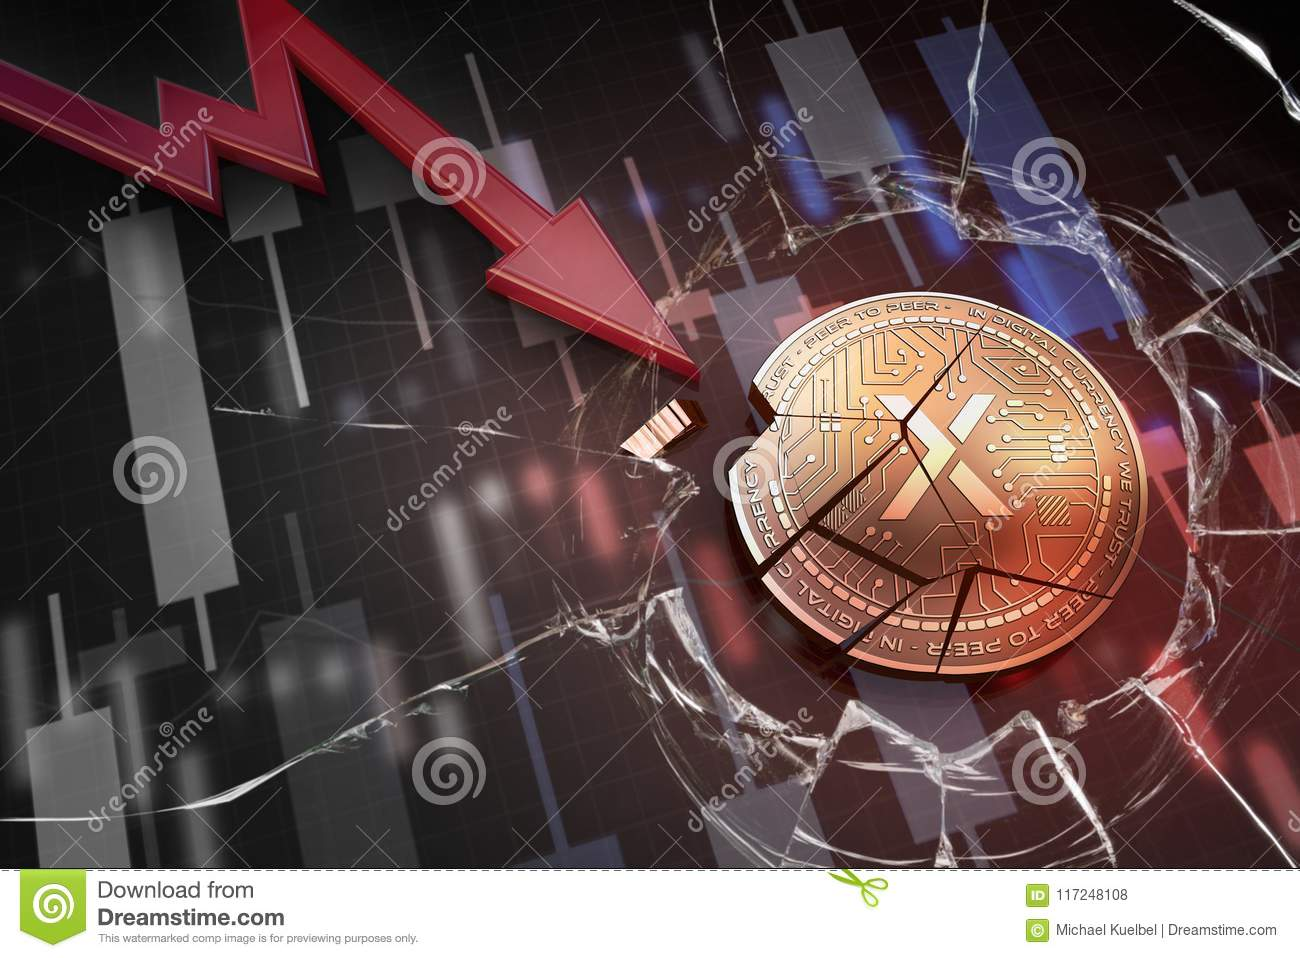 Shiny golden STEX cryptocurrency coin broken on negative chart crash baisse falling lost deficit 3d rendering